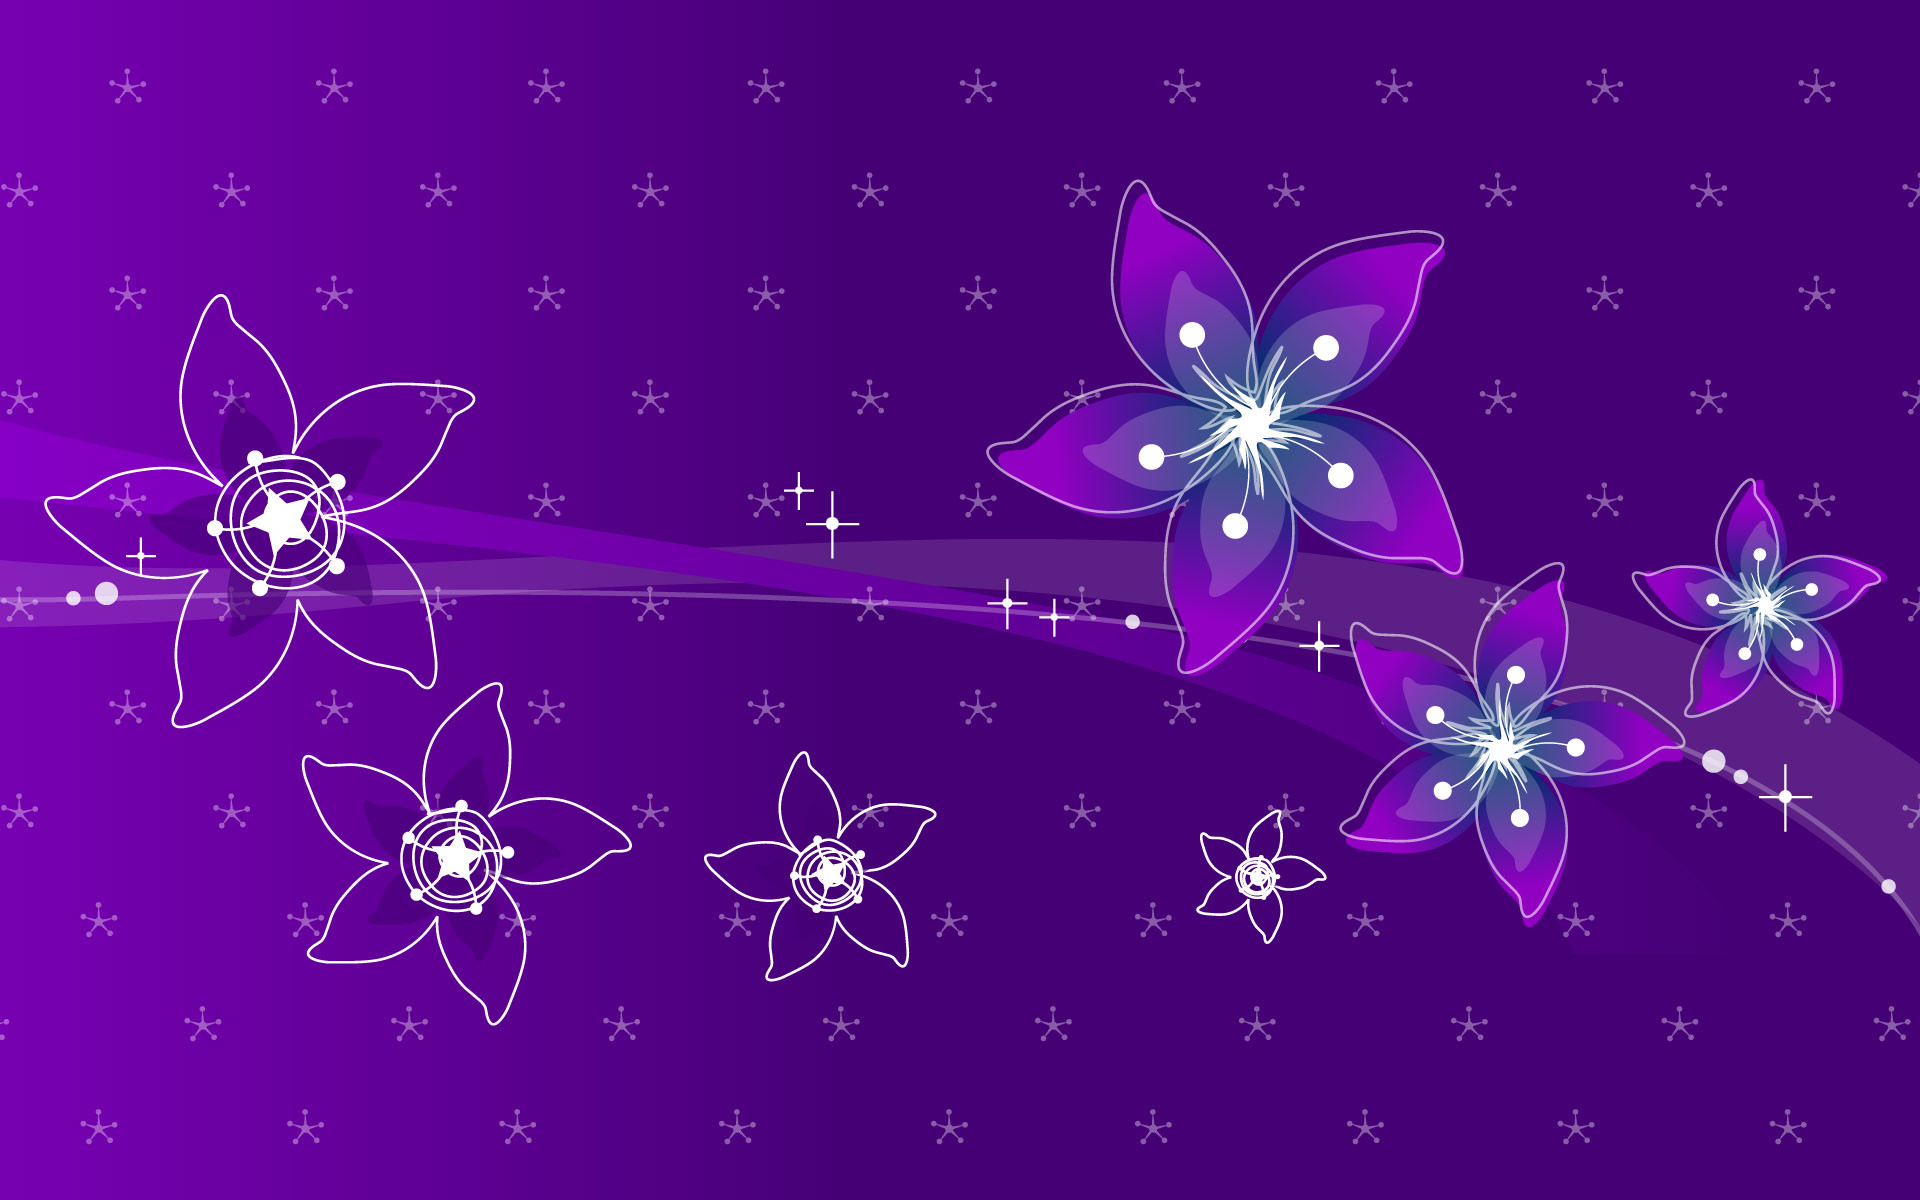 80 Abstract Flowers Design Wallpapers HD – Photo 1 of 80